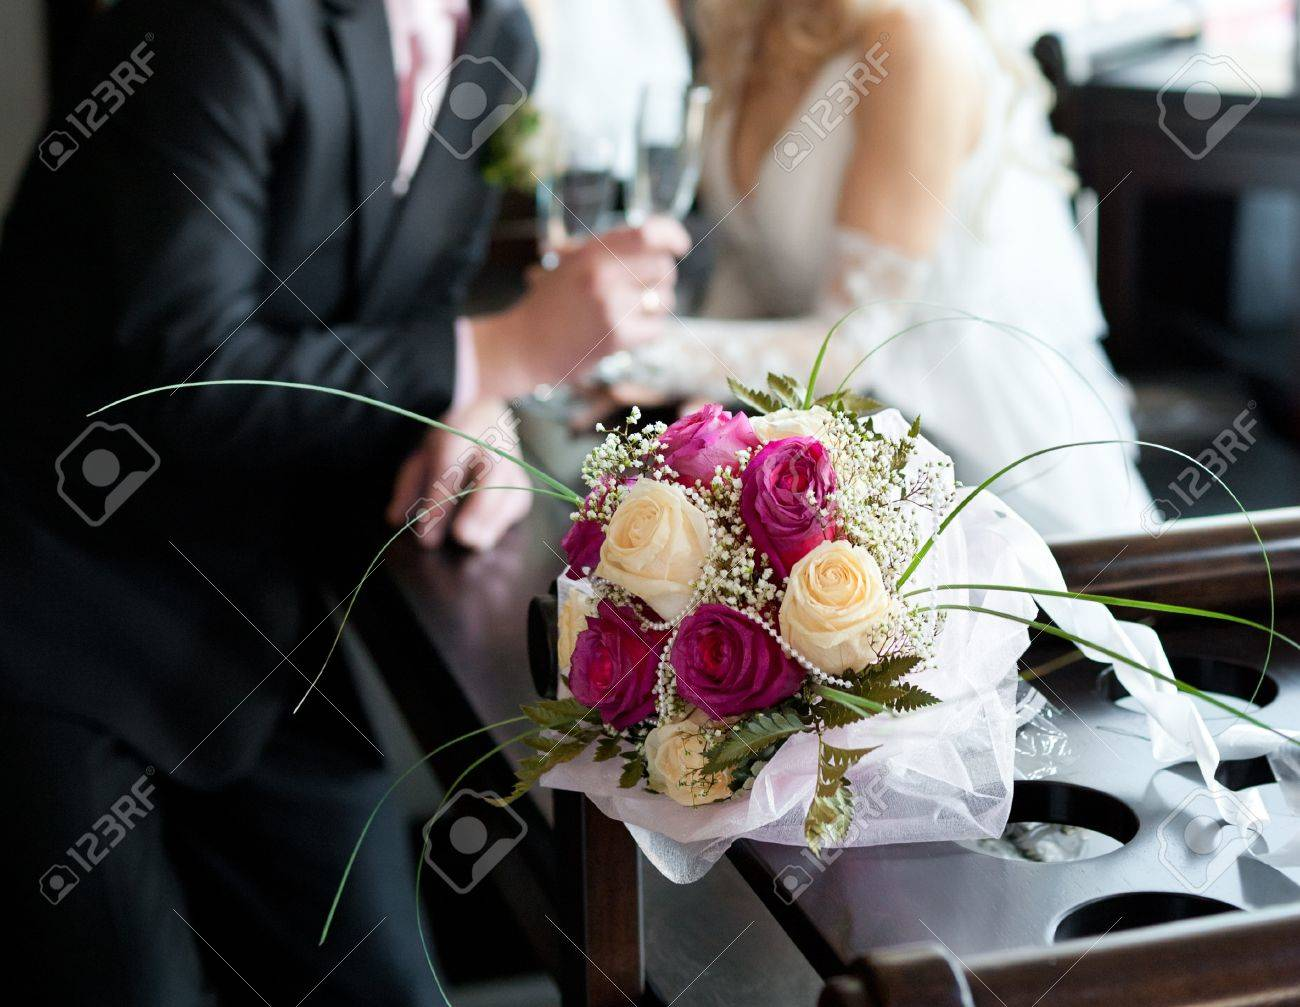 a bridal bouquet of roses, in the background - a groom and a bride hold wine glasses Stock Photo - 12816465